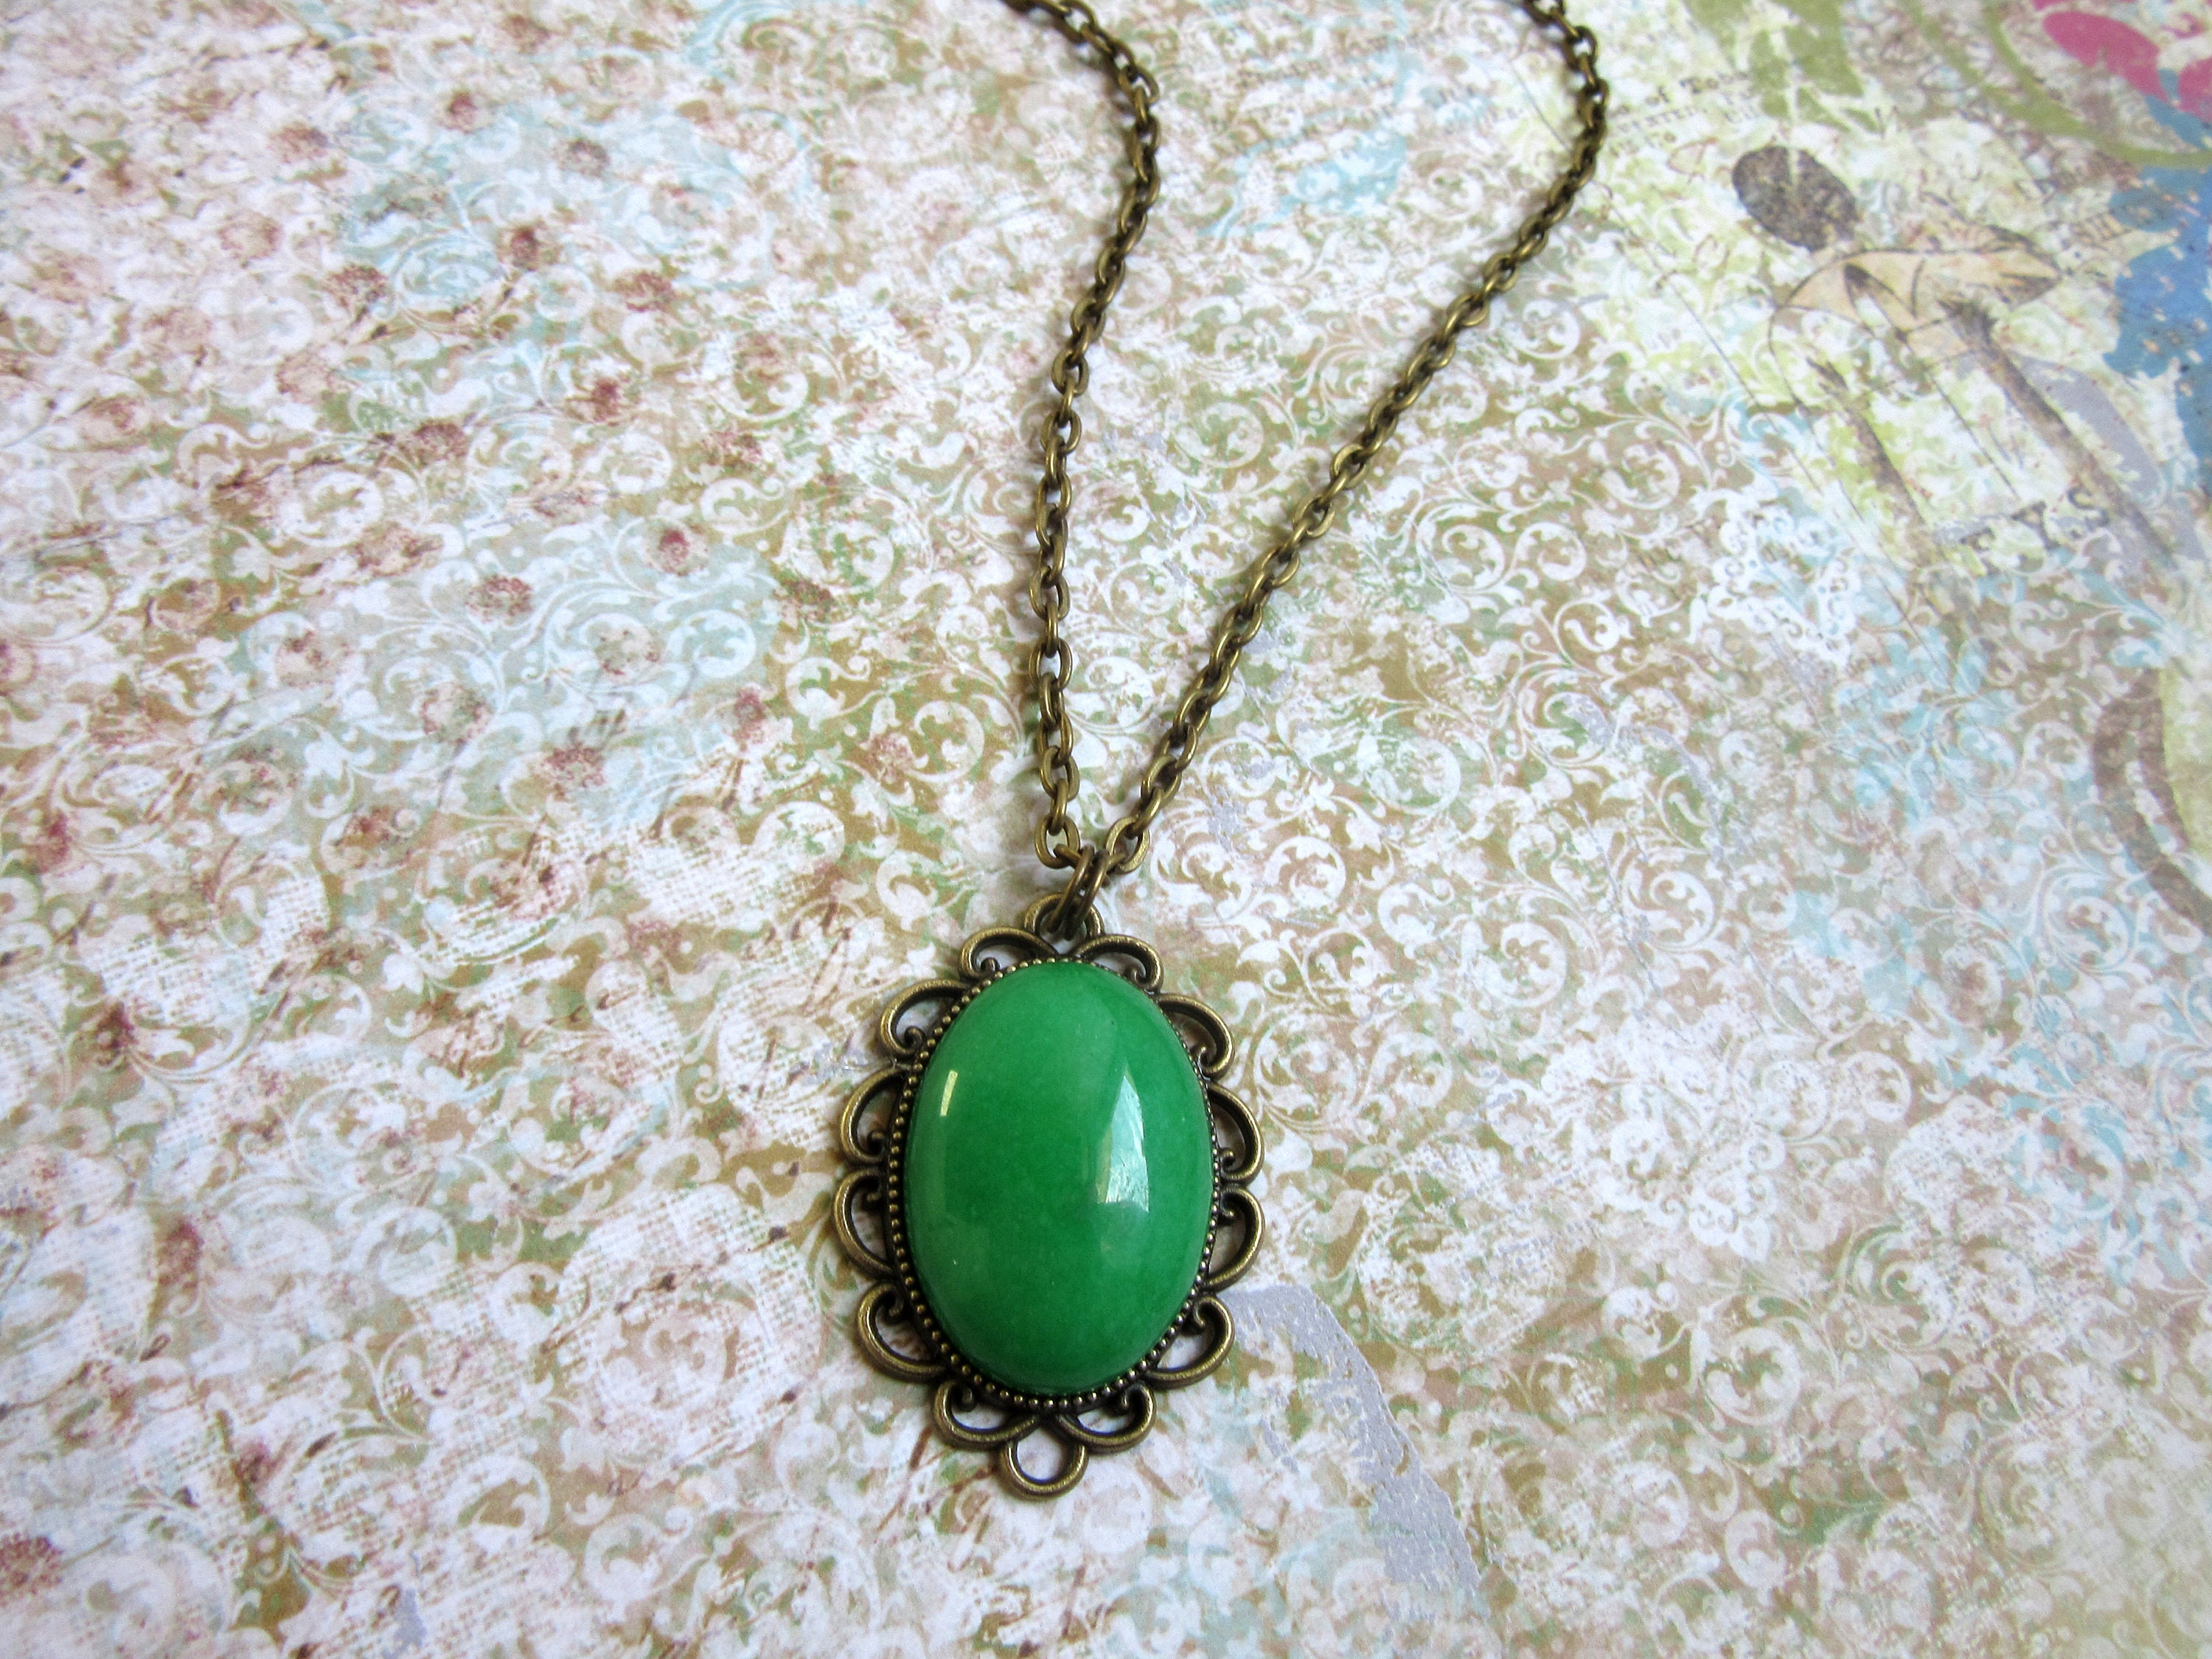 cindy orangegreen green designs david jade orange necklaces color multi necklace